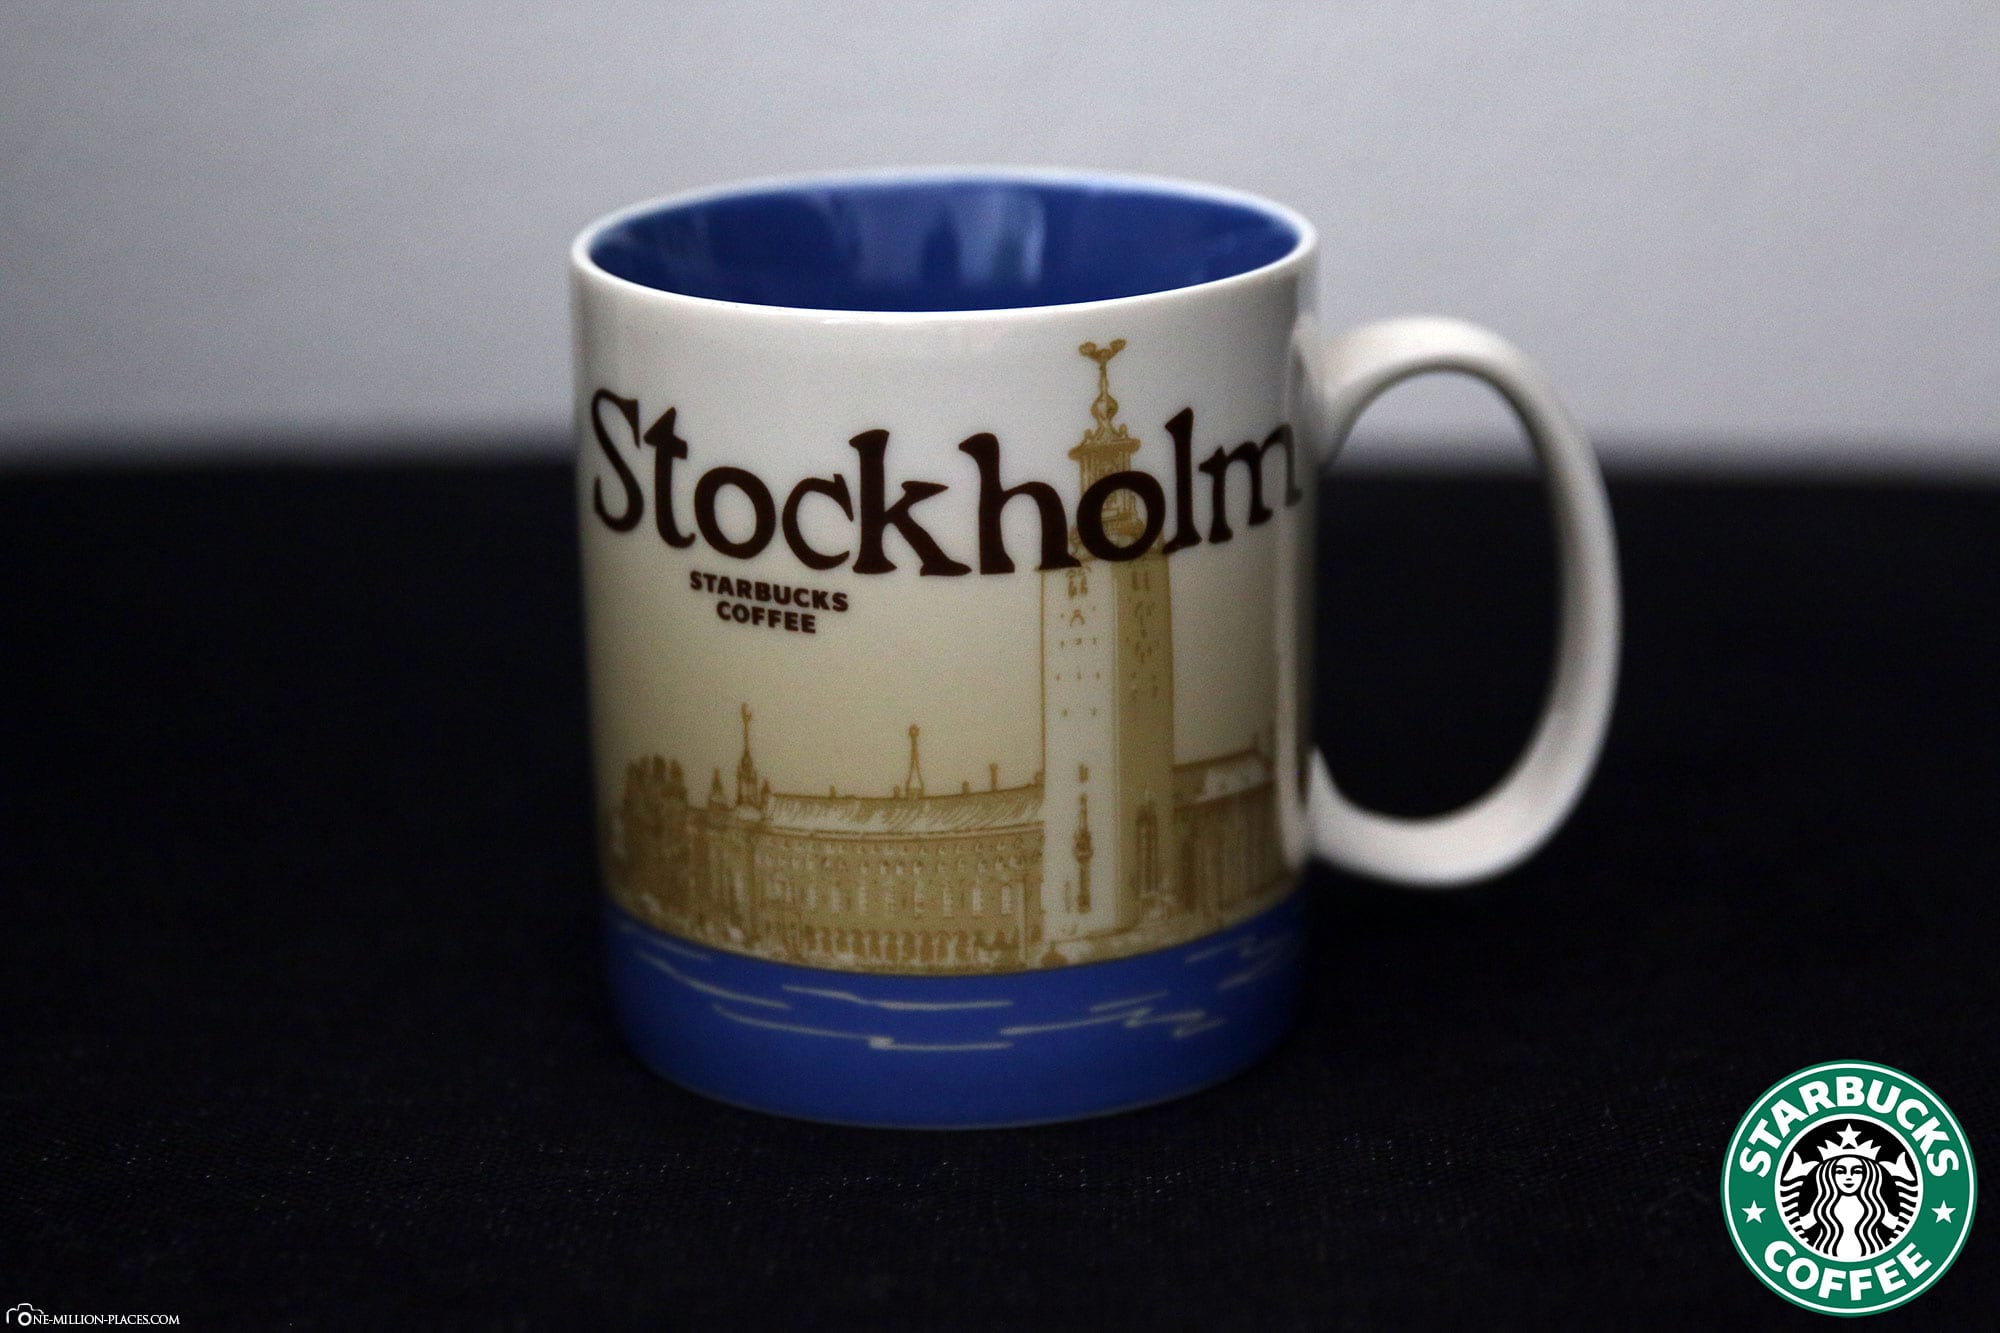 Stockholm, Starbucks Tasse, Global Icon Serie, City Mugs, Sammlung, Schweden, Reisebericht